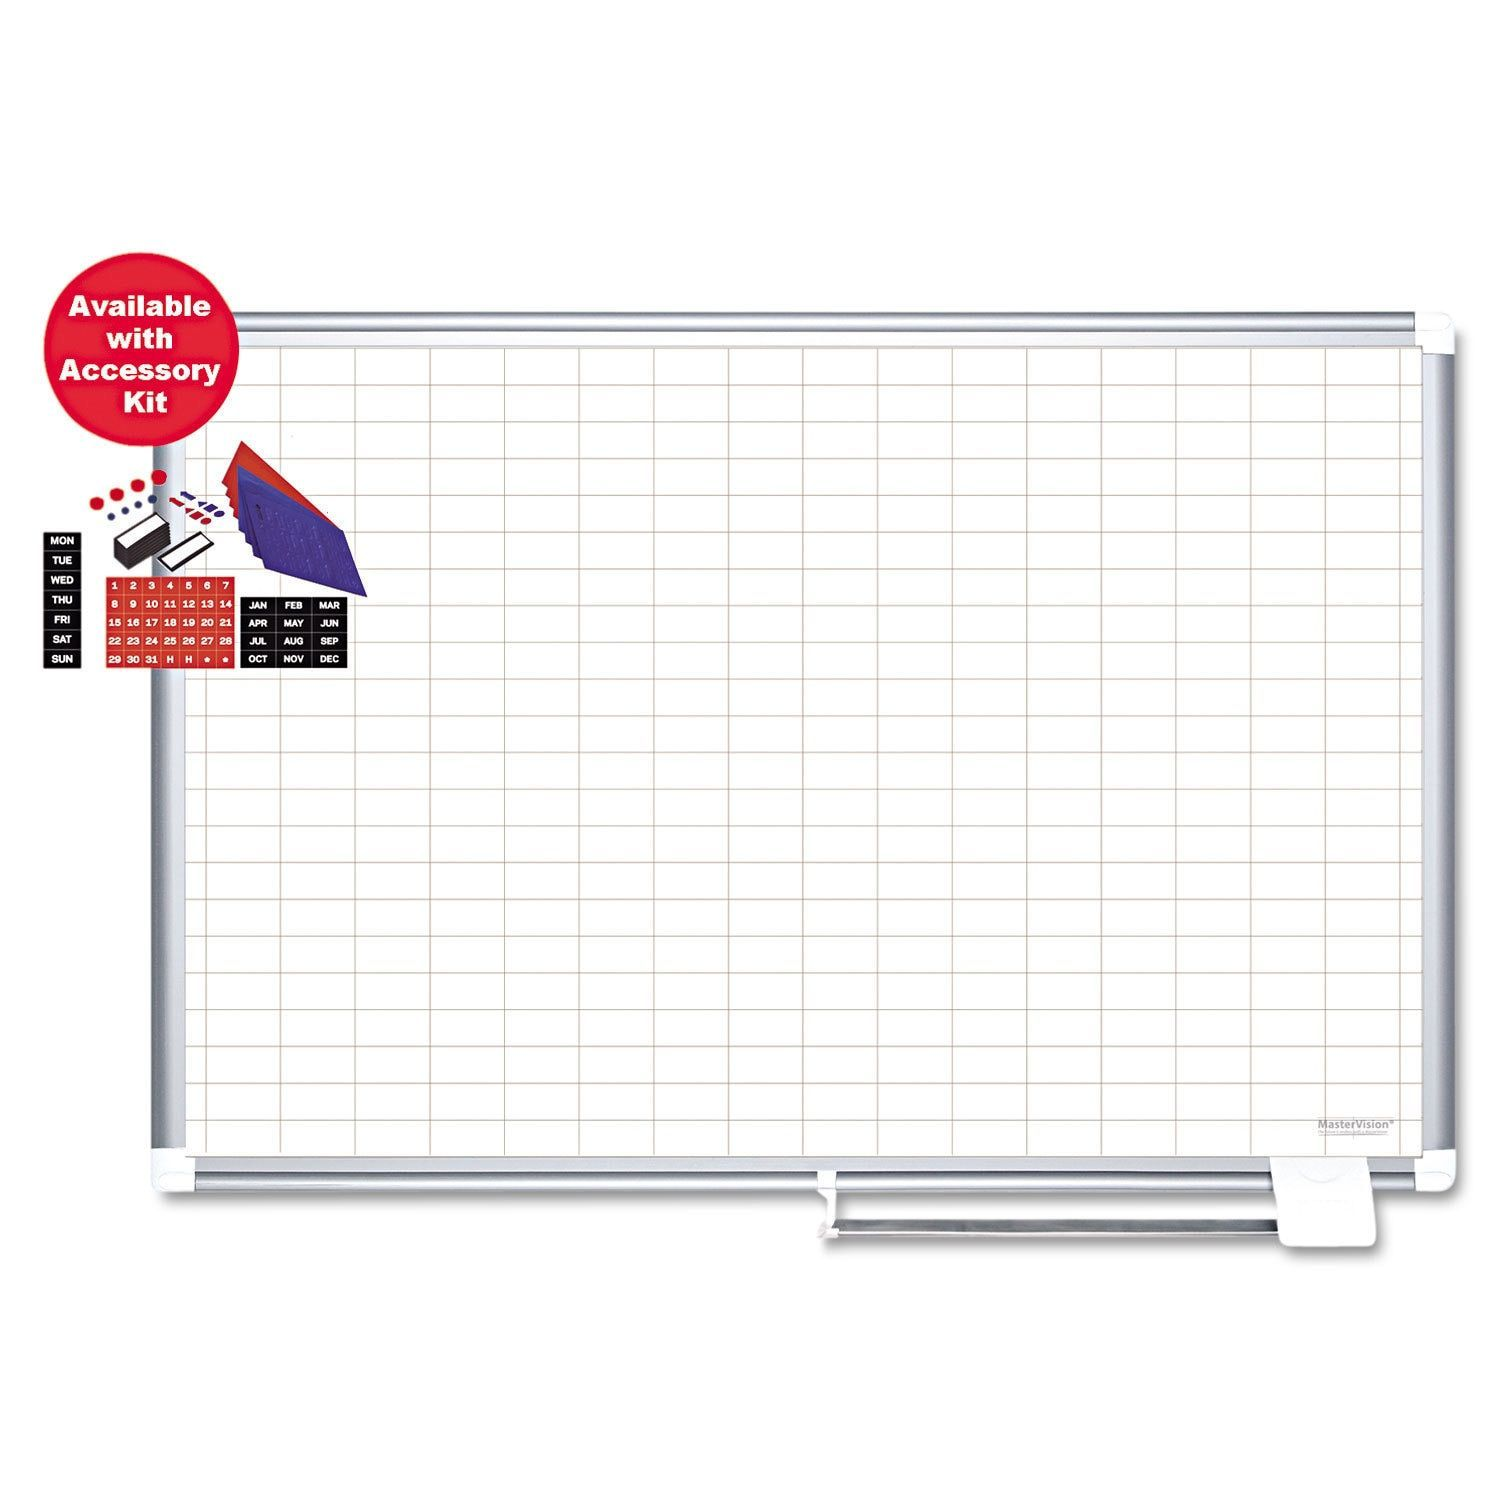 """MasterVision Grid Planning Board with Accessories, 1x2"""" Grid, 72x48, /Silver"""